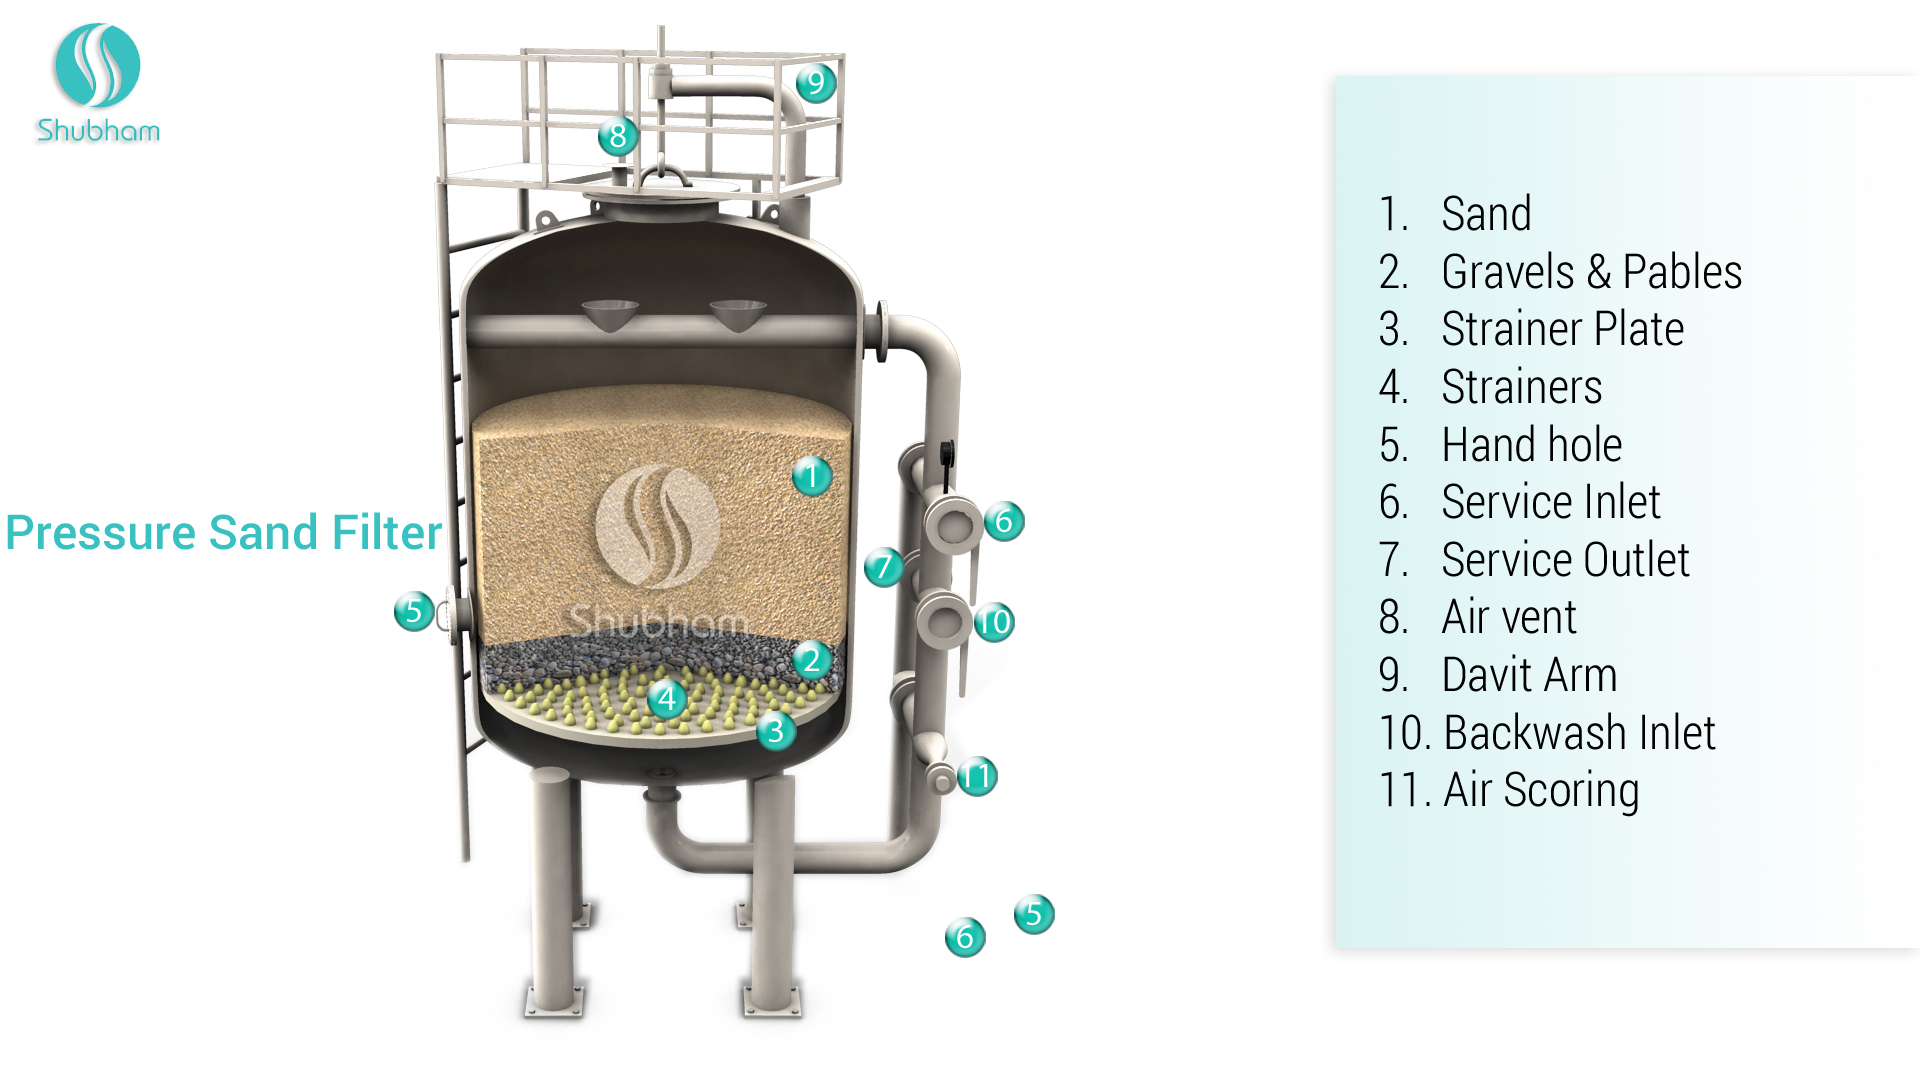 how to chemically clean sand filter